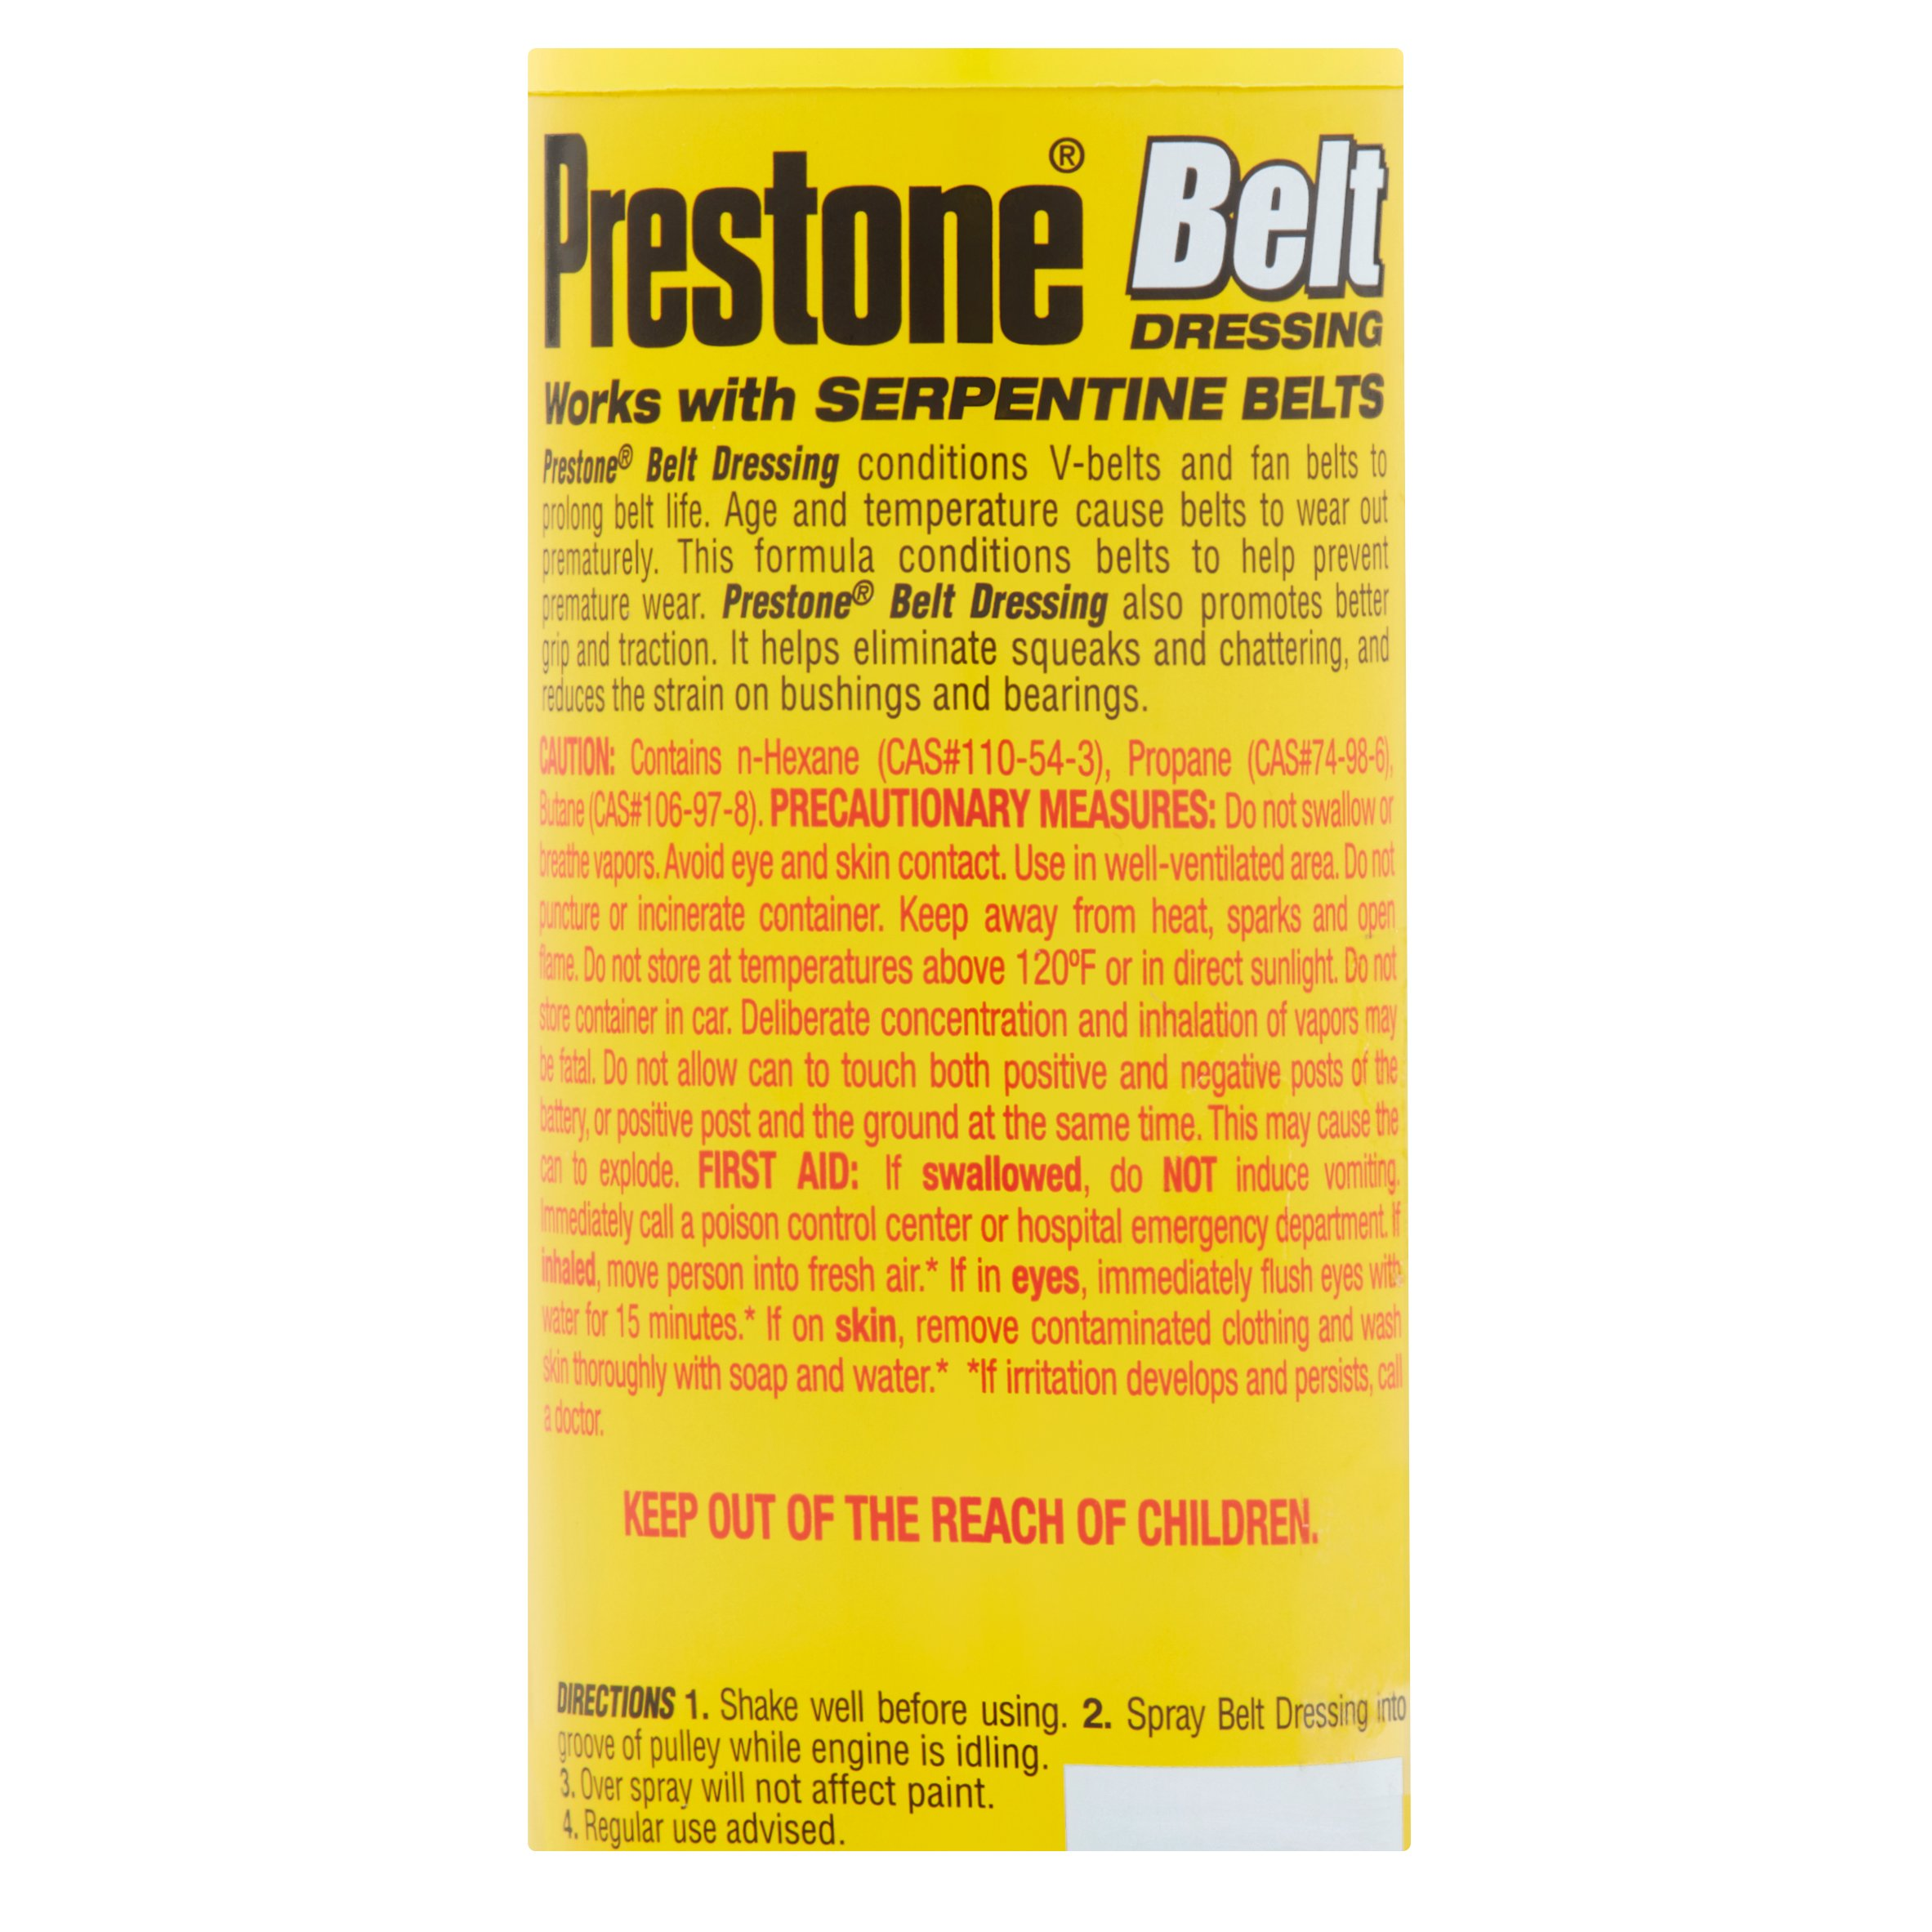 Prestone Belt Dressing Image Wd40 Wd 40 Specialist As325 6 Oz